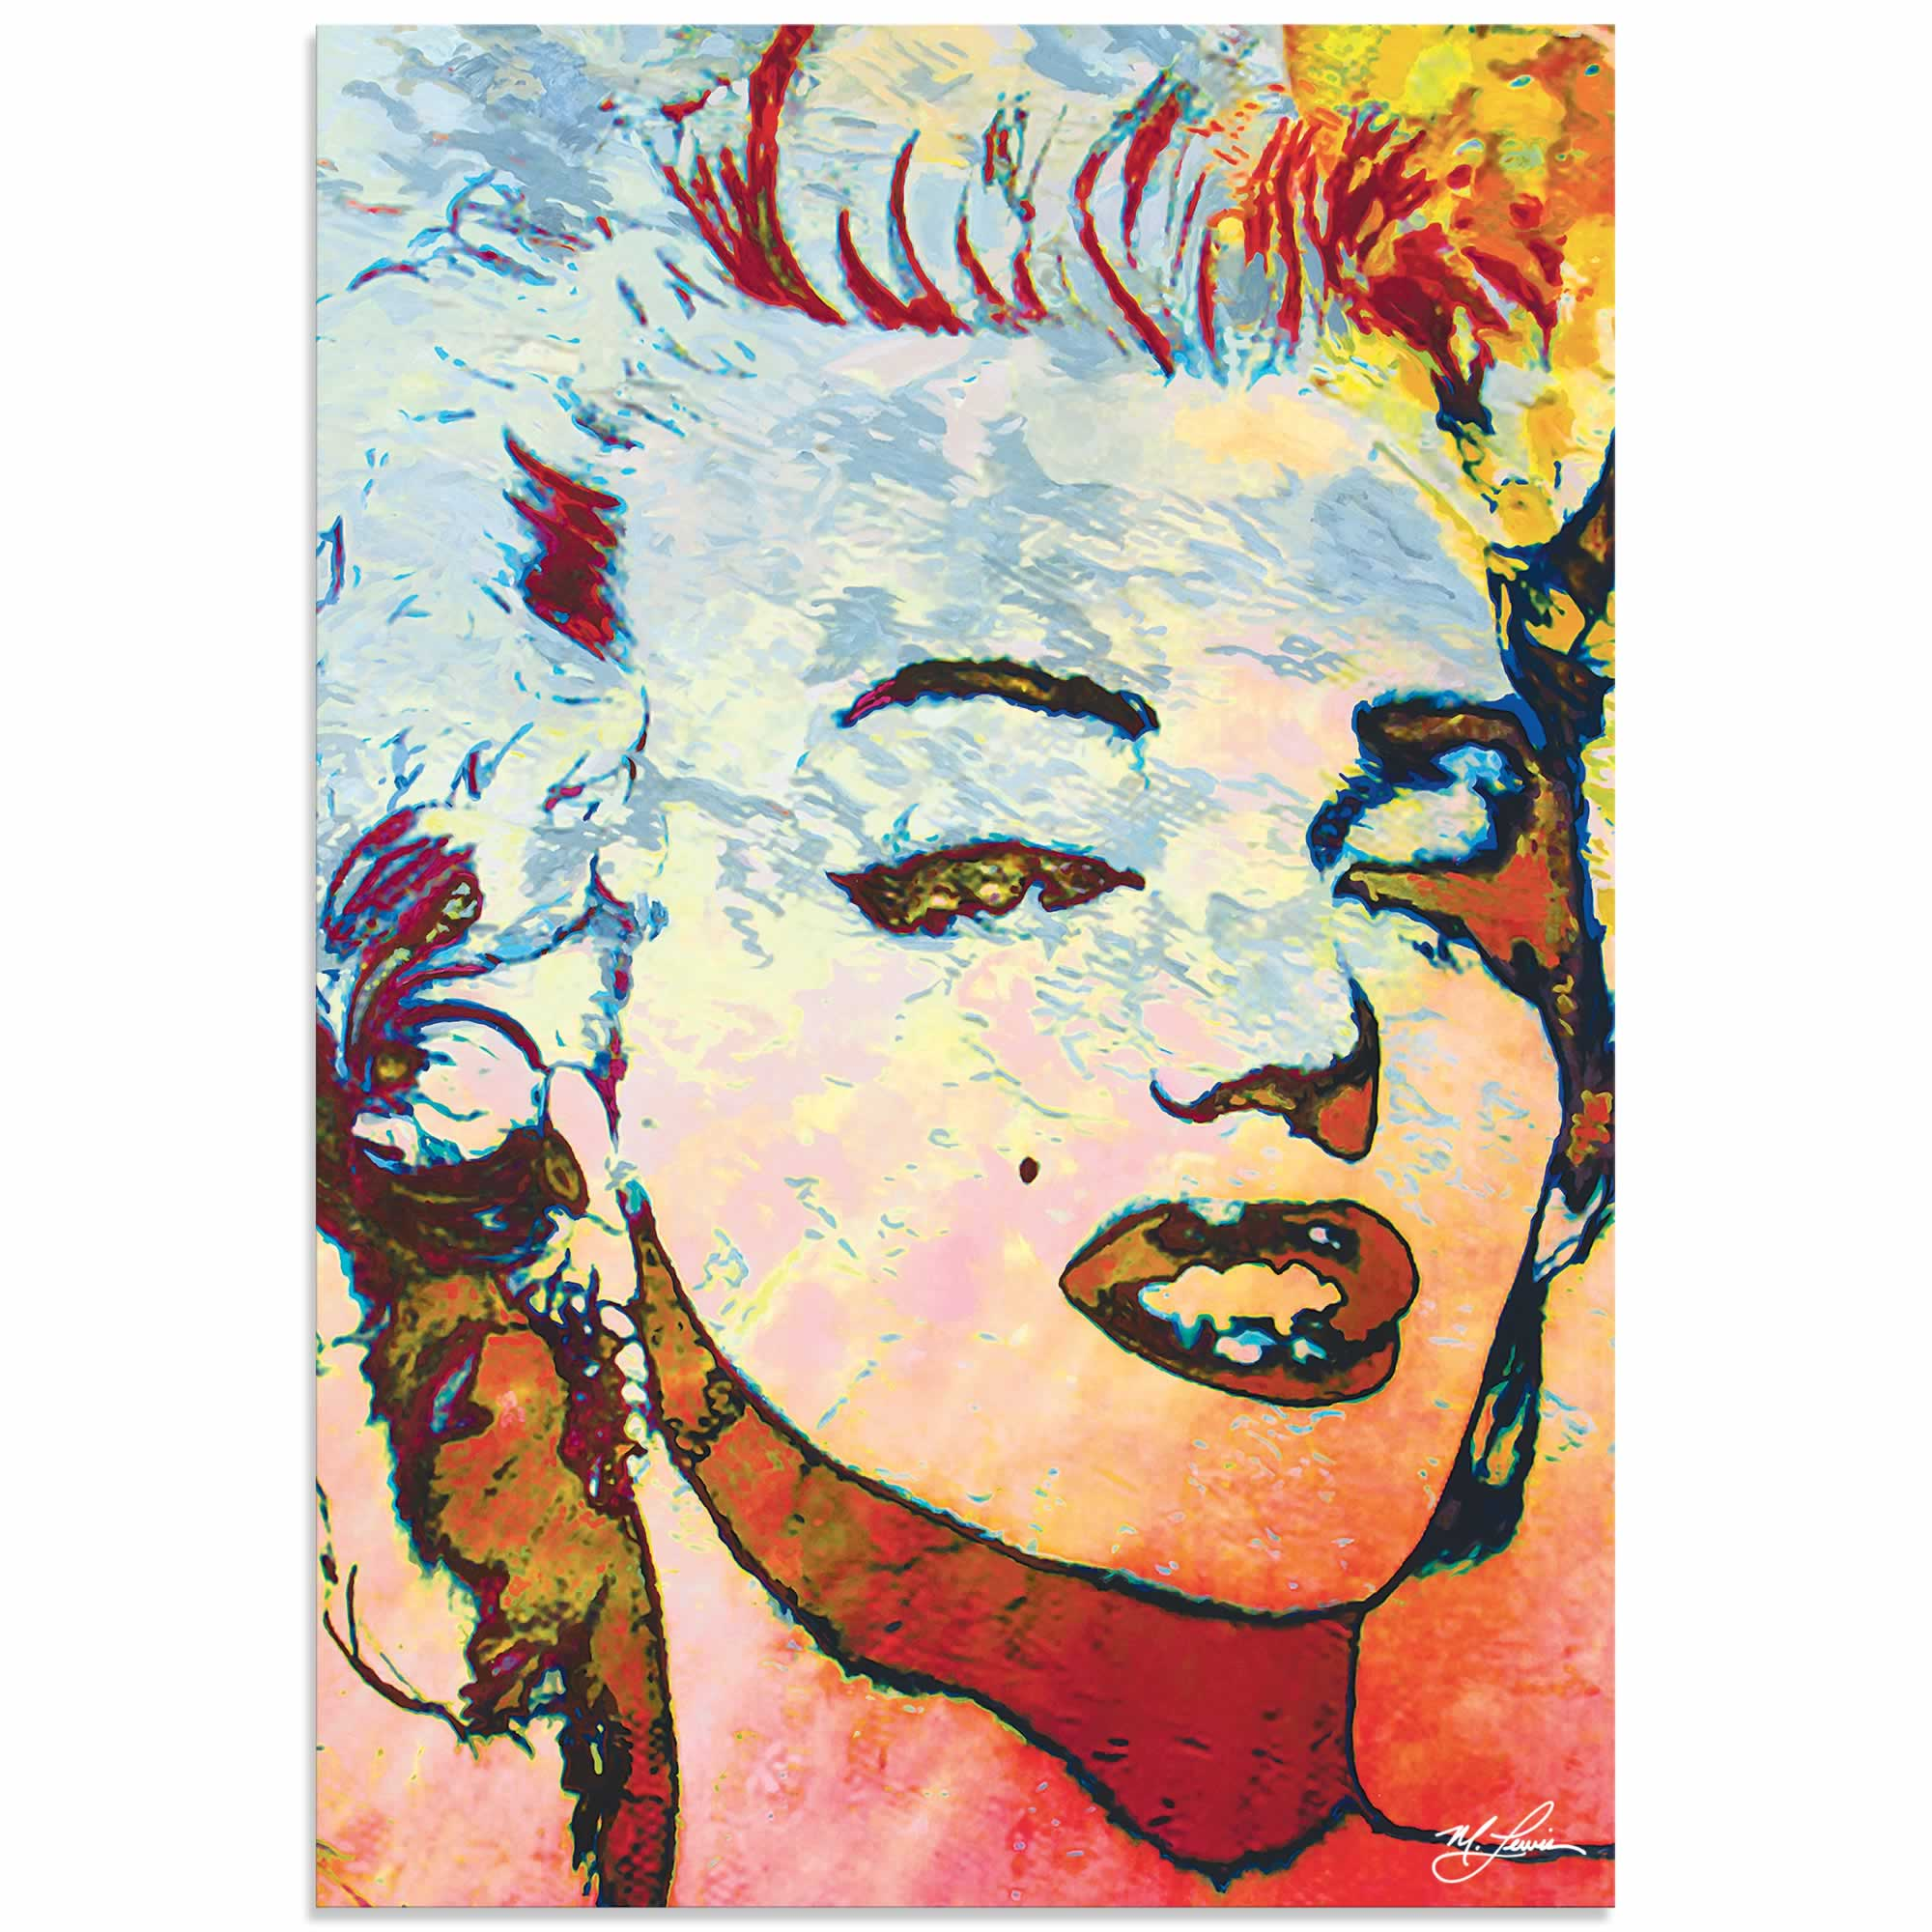 Marilyn Monroe Red | Pop Art Painting by Mark Lewis, Signed & Numbered Limited Edition